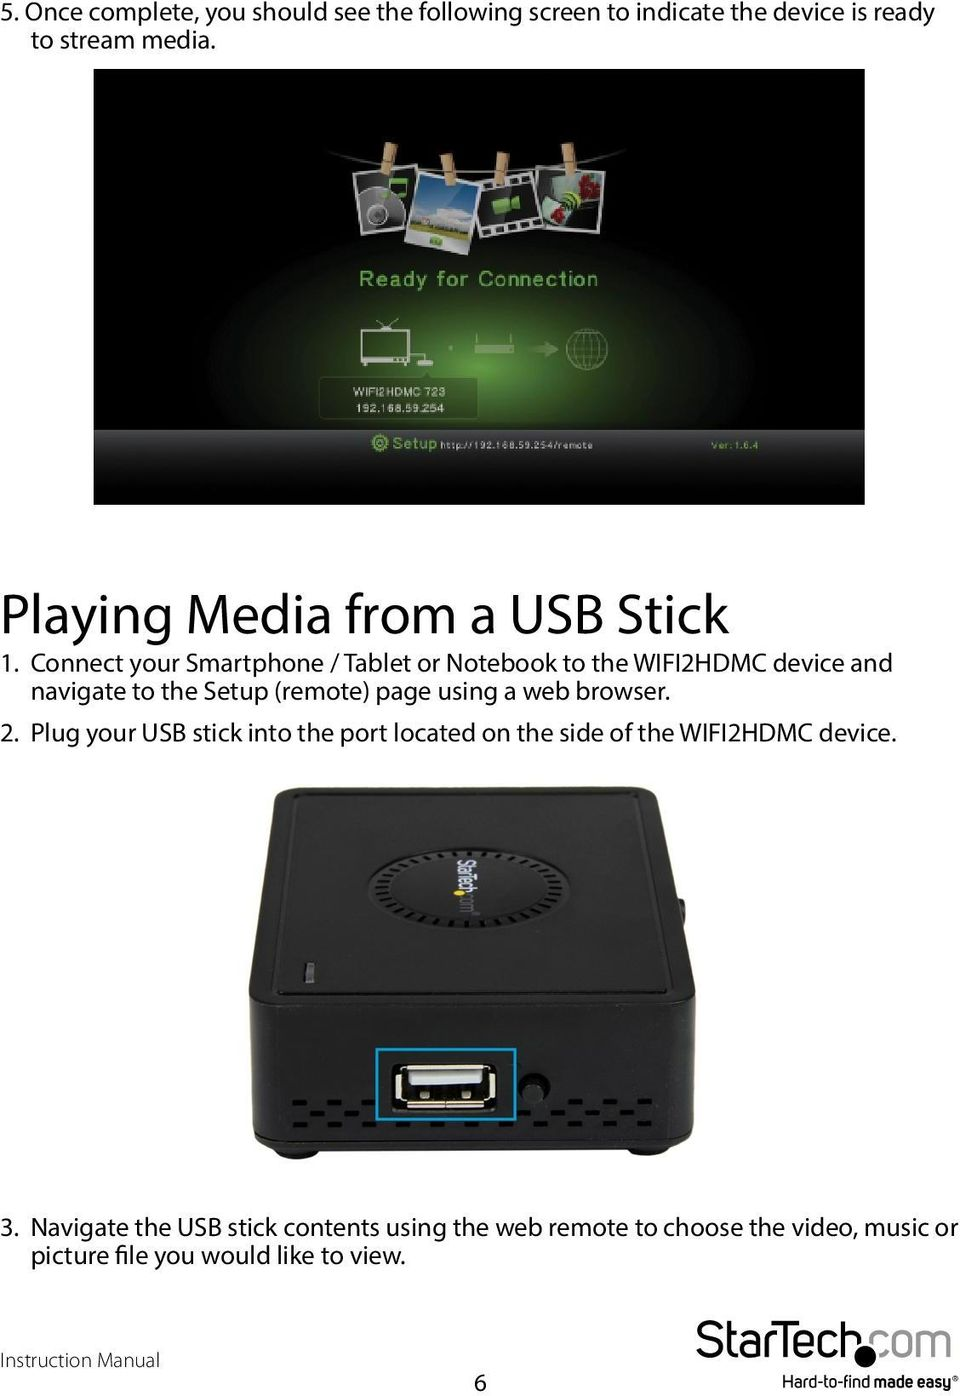 Connect your Smartphone / Tablet or Notebook to the WIFI2HDMC device and navigate to the Setup (remote) page using a